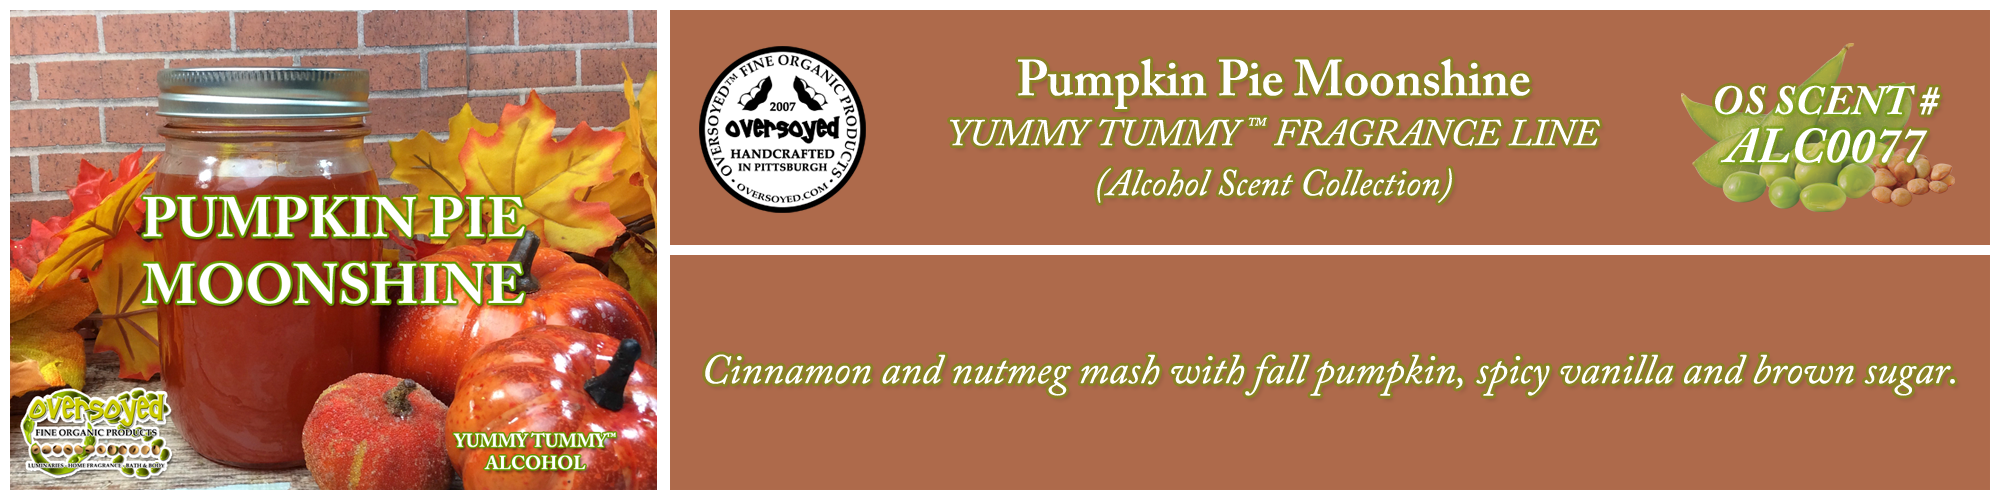 Pumpkin Pie Moonshine Handcrafted Products Collection